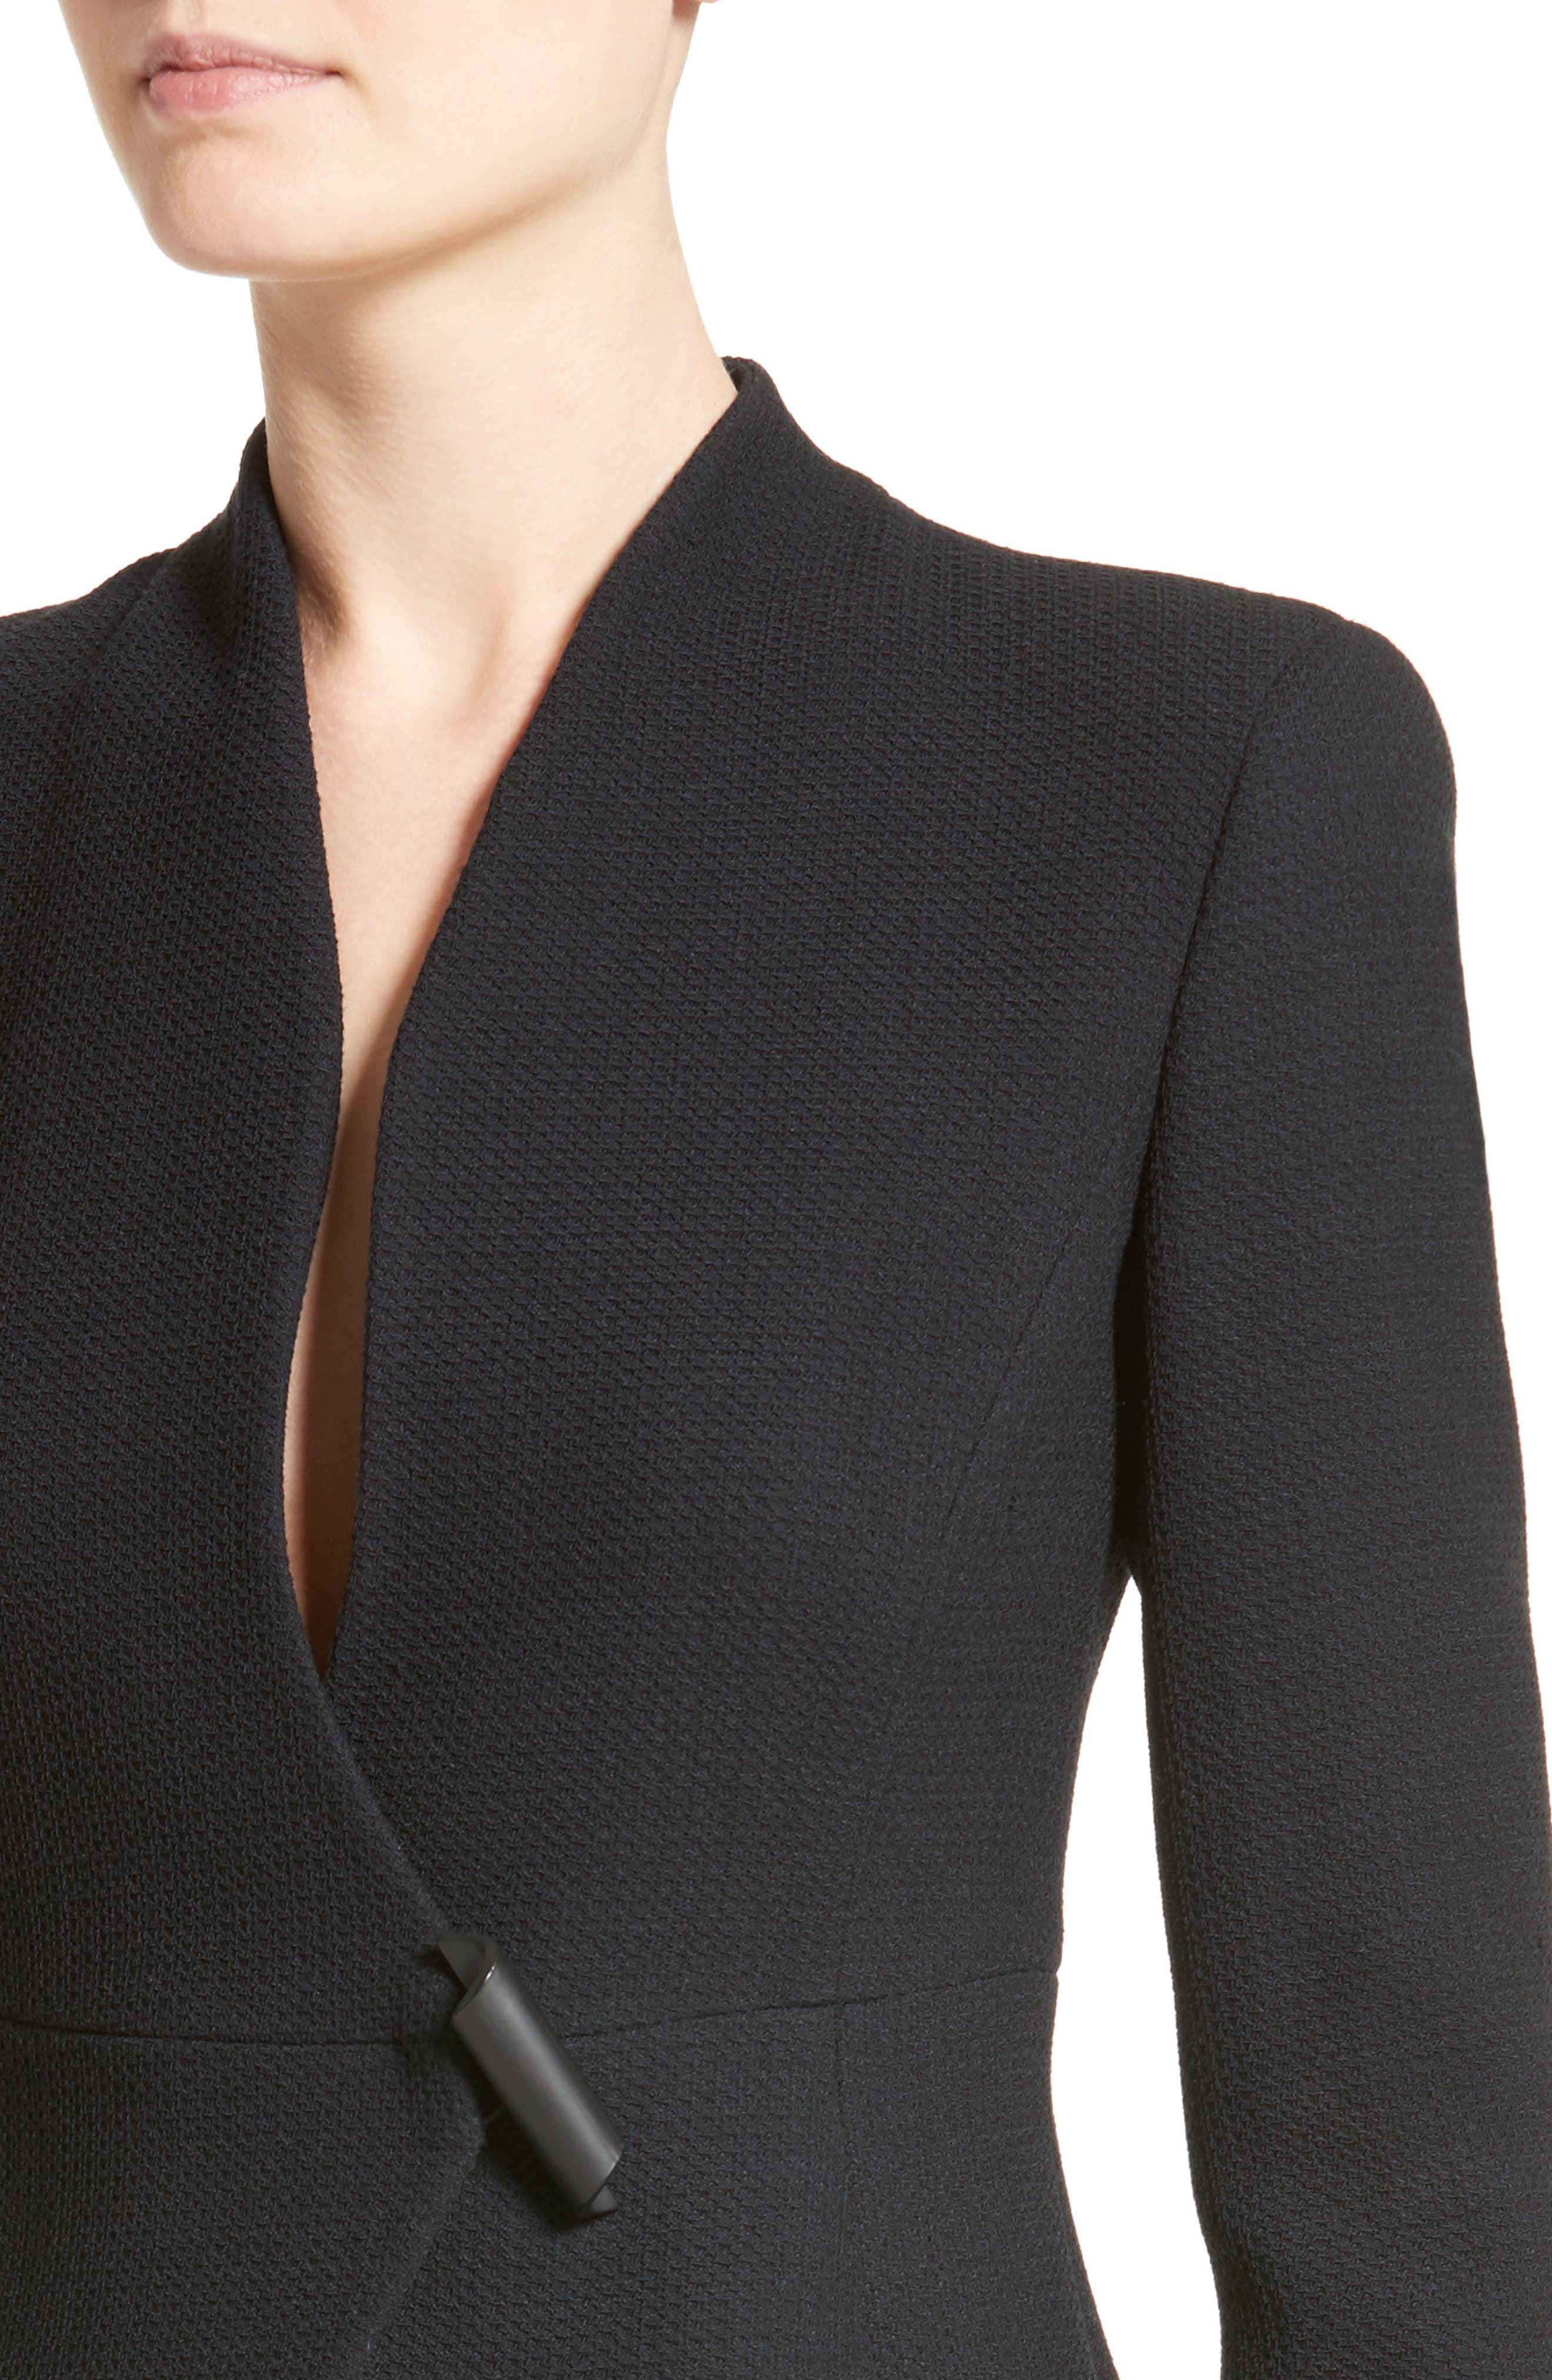 Textured Stretch Wool Jacket,                             Alternate thumbnail 4, color,                             001